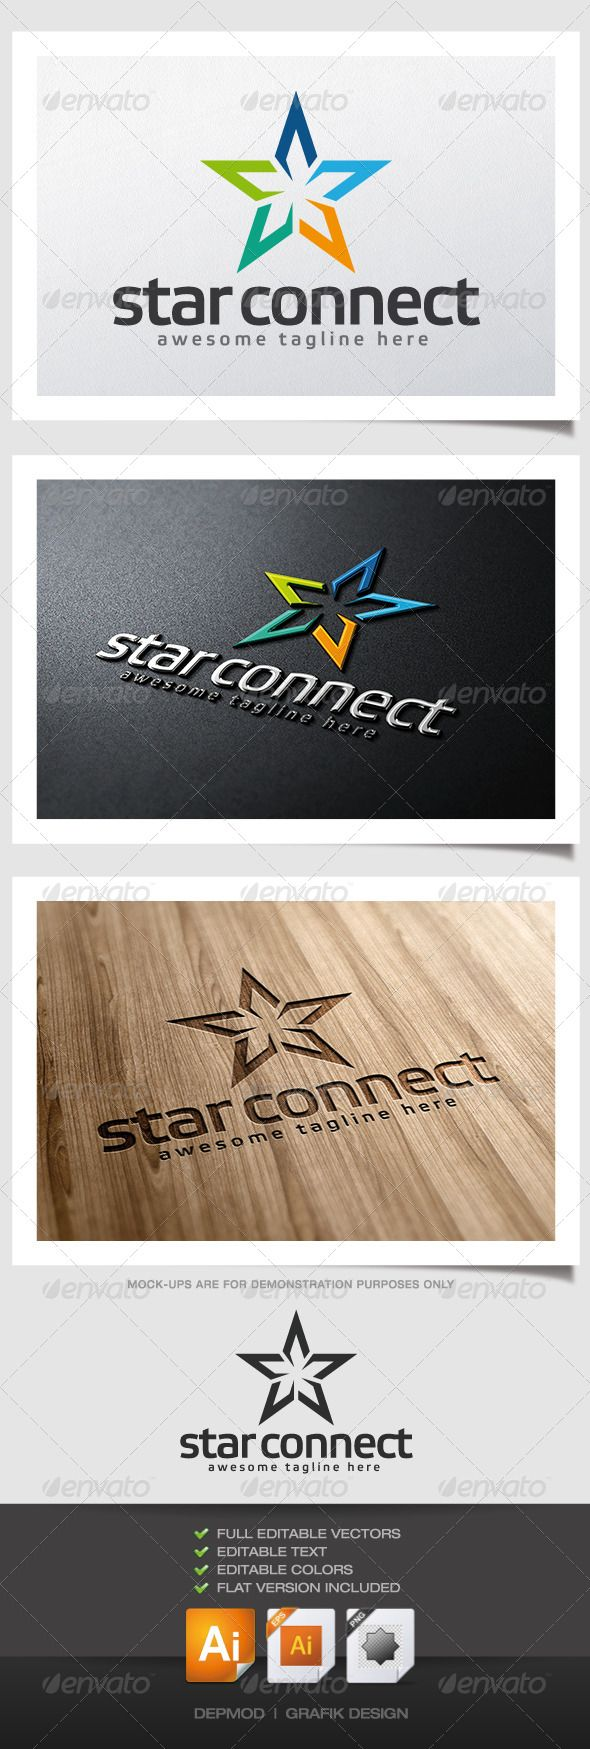 Star Connect Logo #GraphicRiver Logo of a stylized colorful star. Can be used for many kind of project. Full vectors, this logo can be easily resize and colors can be changed to fit your colors project. Flat (black) version for print also included. The font used is in a download file in the package. Font : .fontpark /en/font/elektra-medium-pro/ Files provided : .ai (CS6 and CS), .eps, .jpg, .png (transparent) Created: 16May13 GraphicsFilesIncluded: TransparentPNG #JPGImage #VectorEPS…